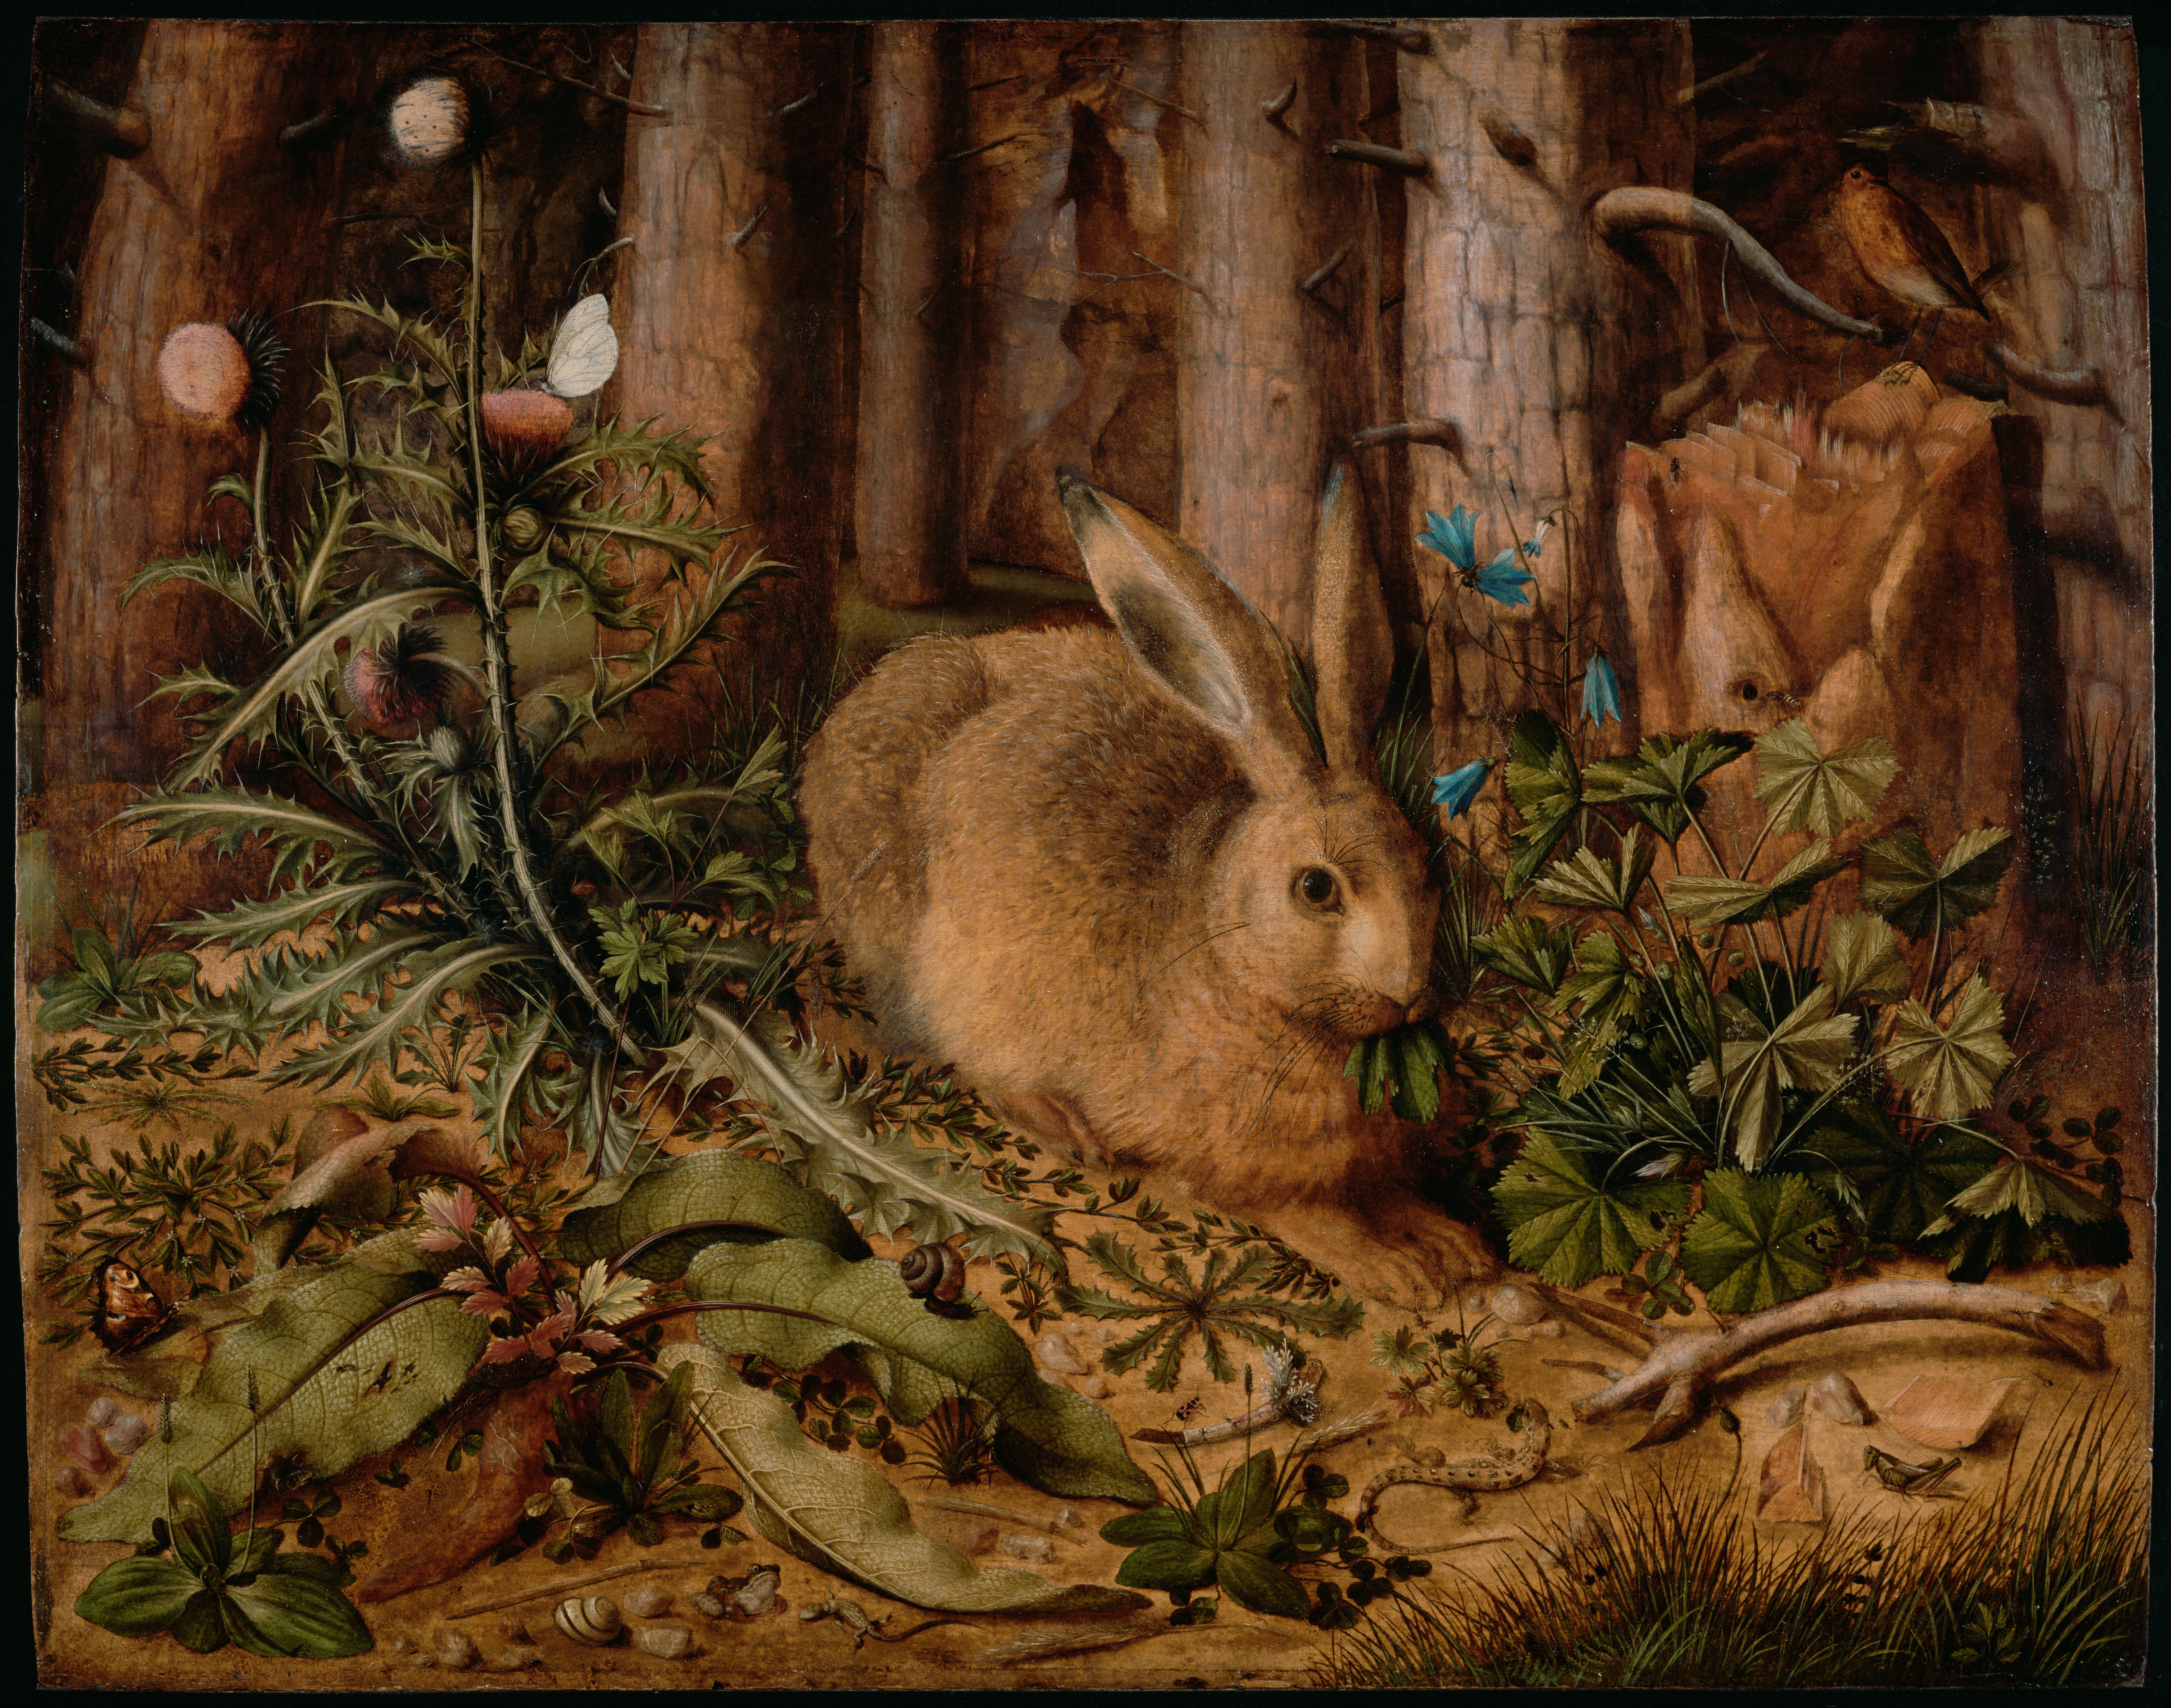 Rabbits and hares in art - Wikipedia